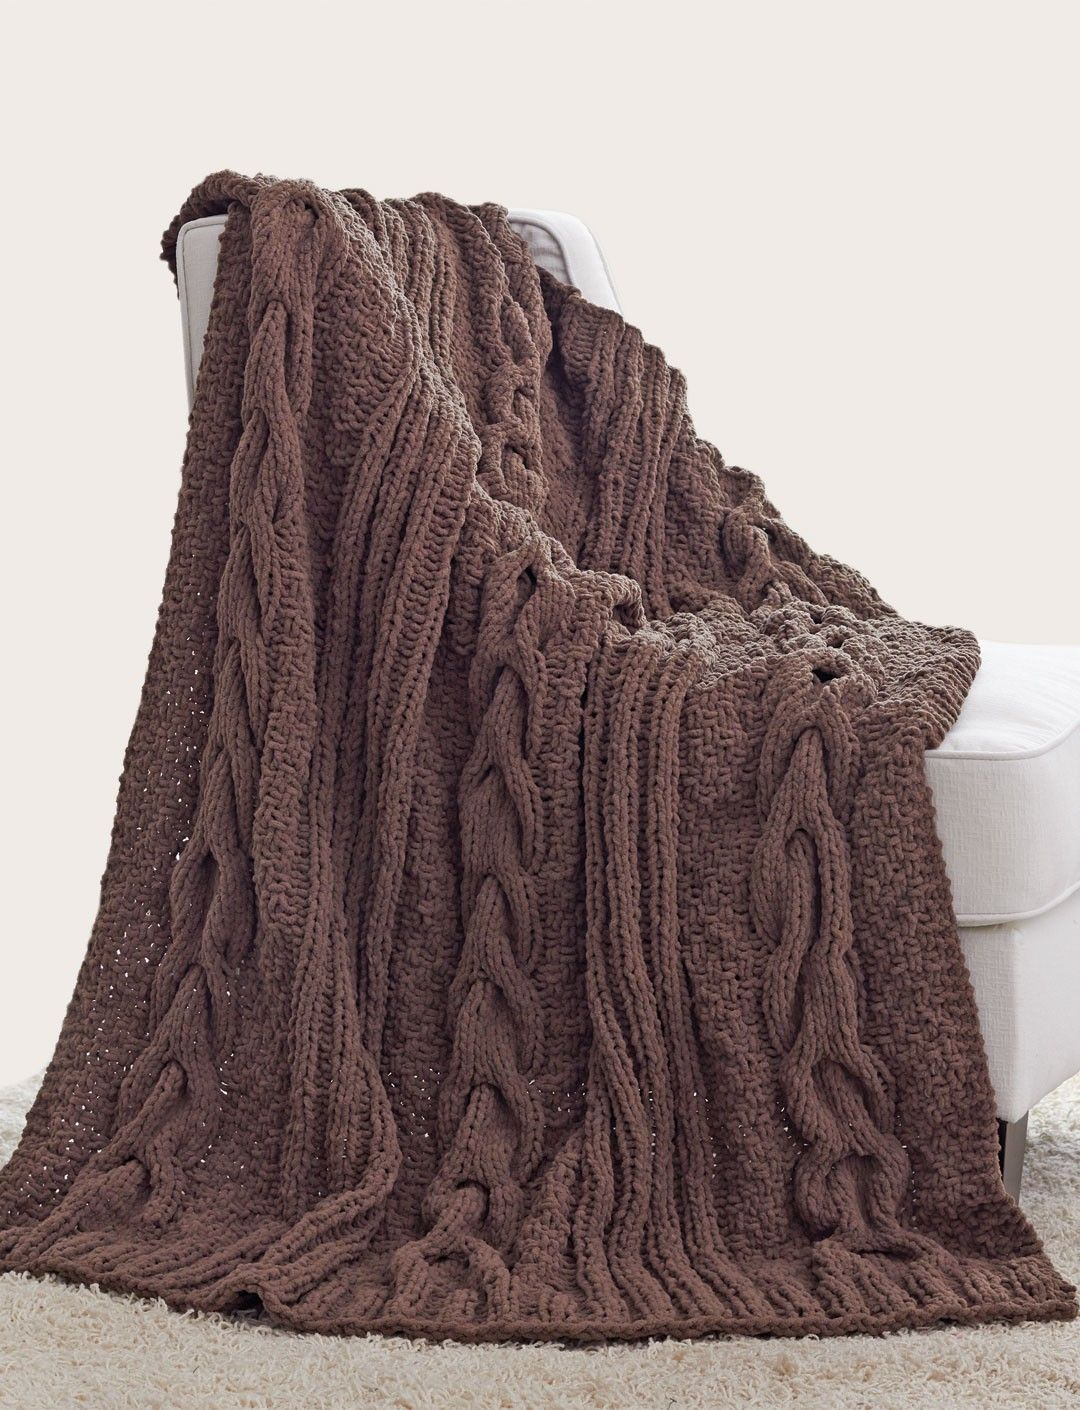 Cable Afghan Knitting Patterns | Cable, Blanket and Afghans